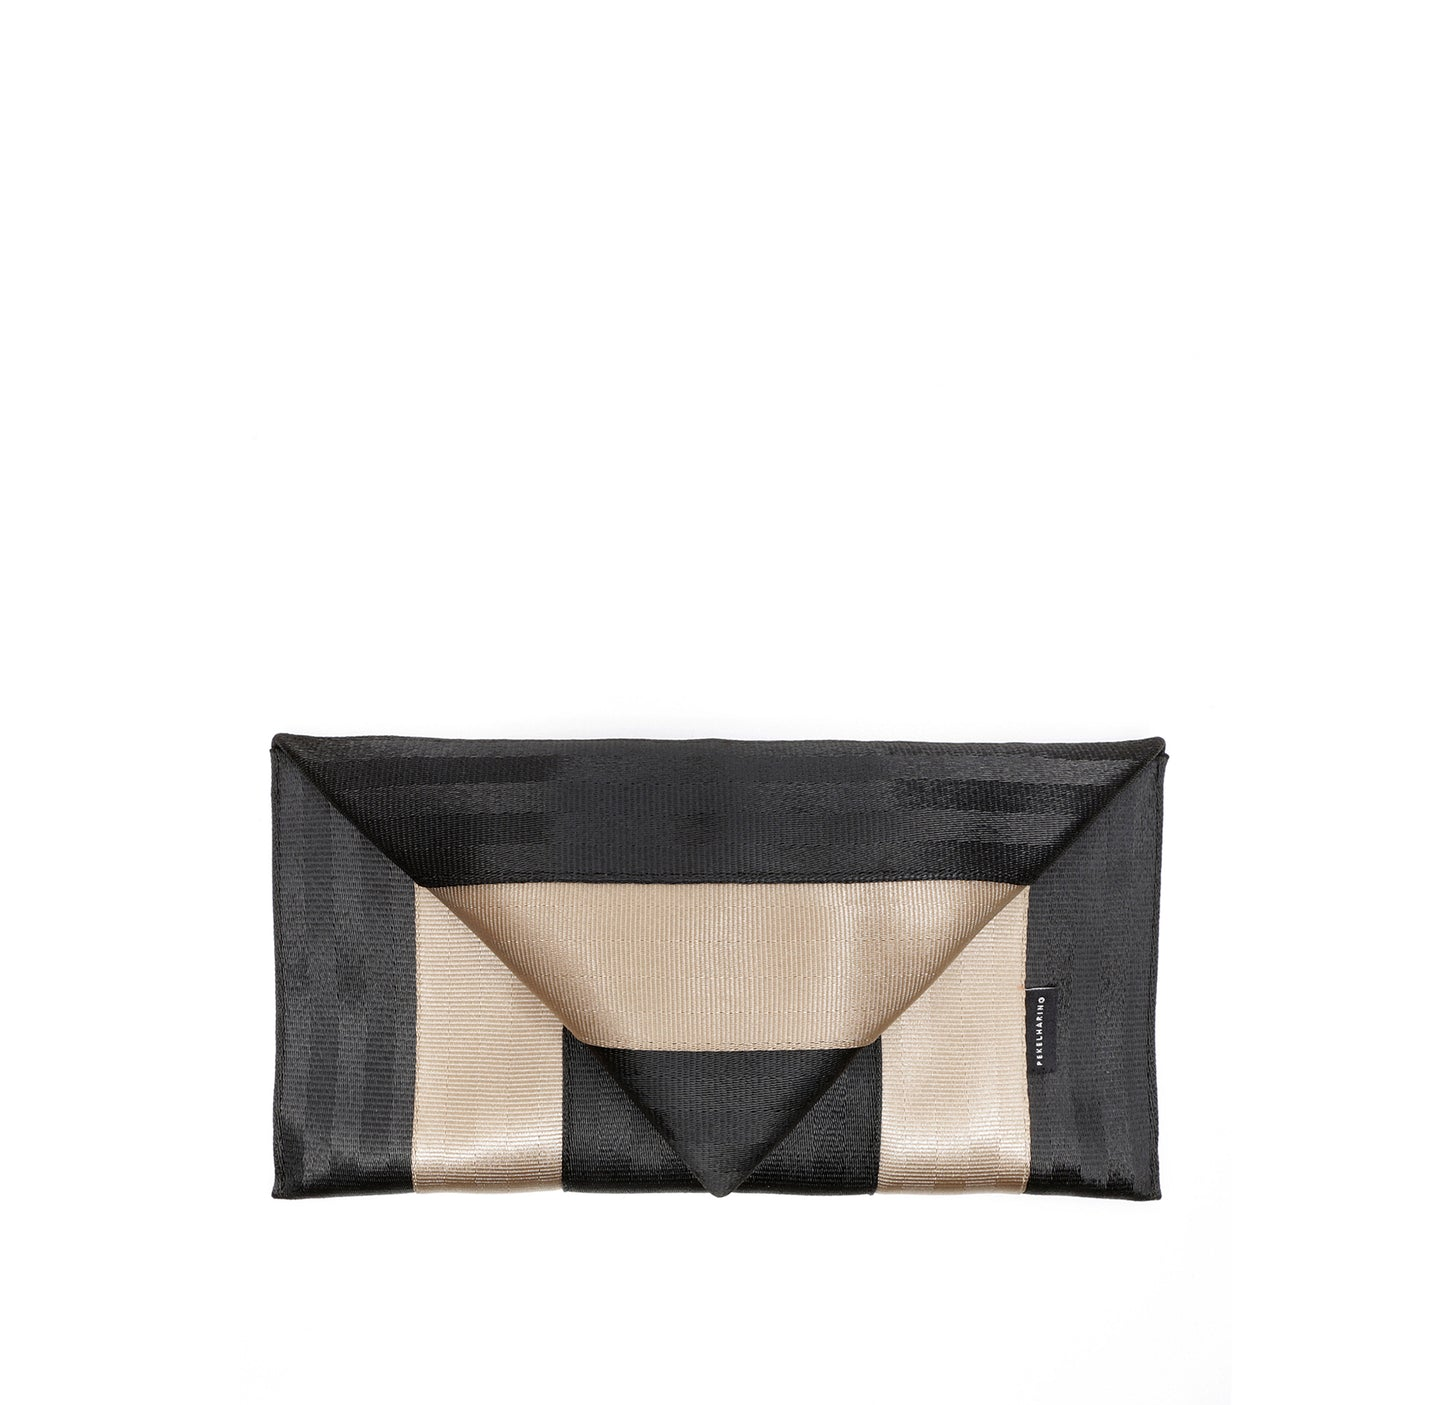 Clutch Black Gold front